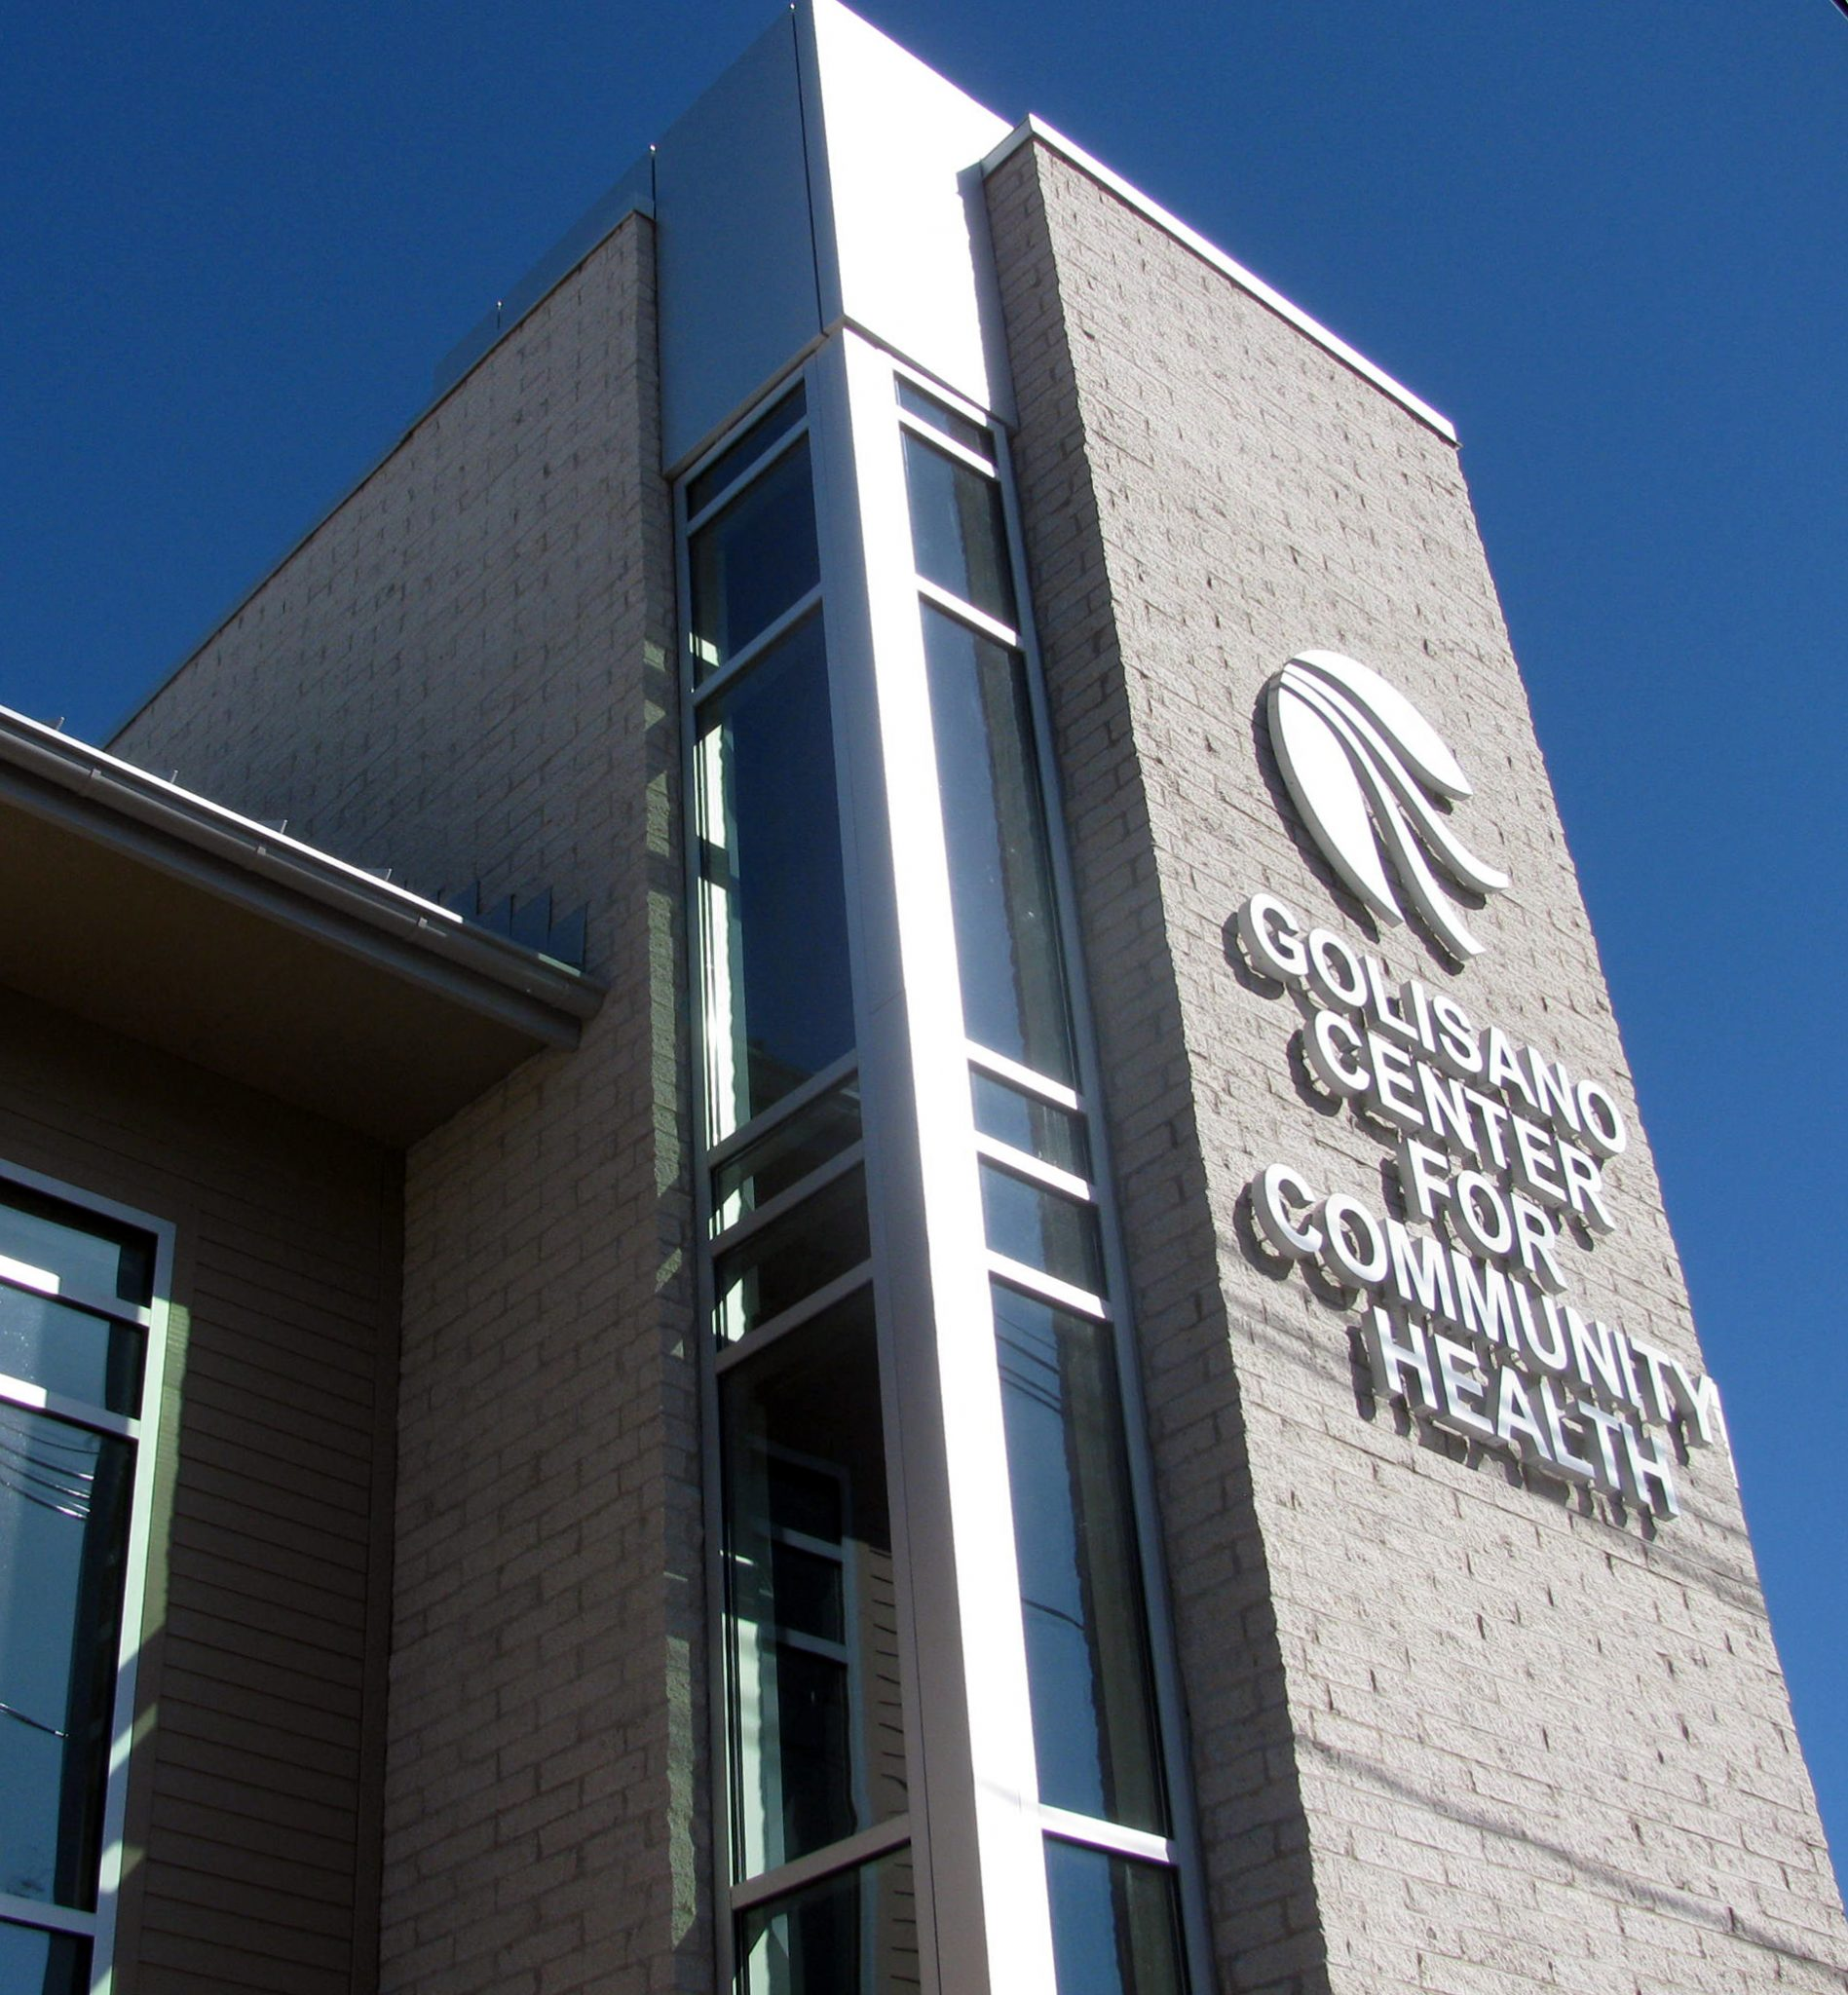 Golisano Center For Community Health Opens At Niagara Falls Memorial Medical Center